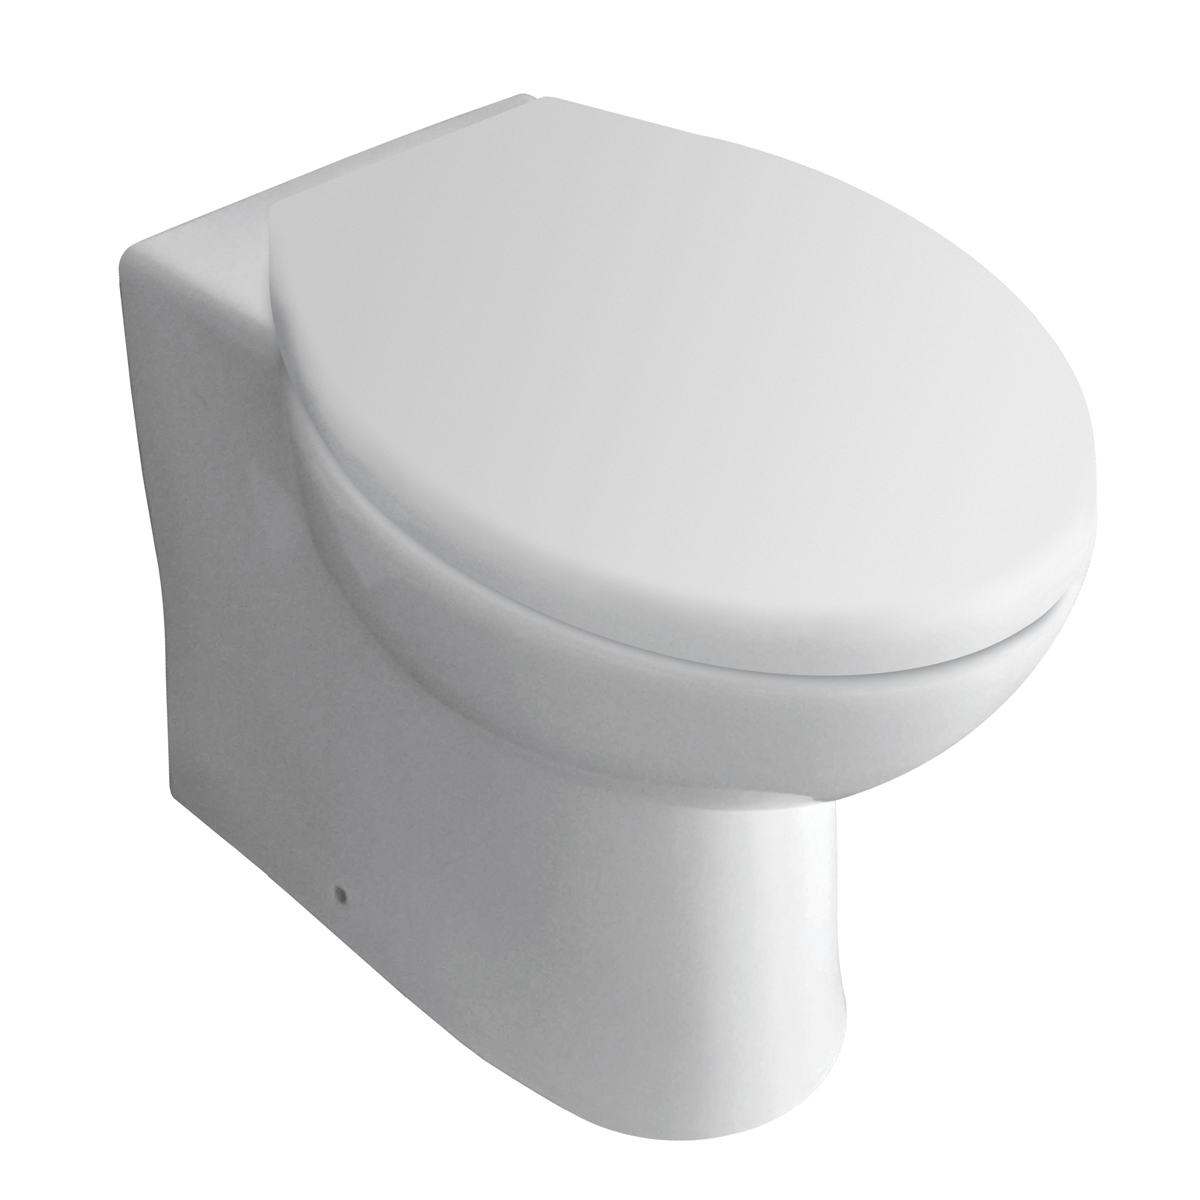 K-Vit G4K Back To Wall Pan (Seat Not Included)